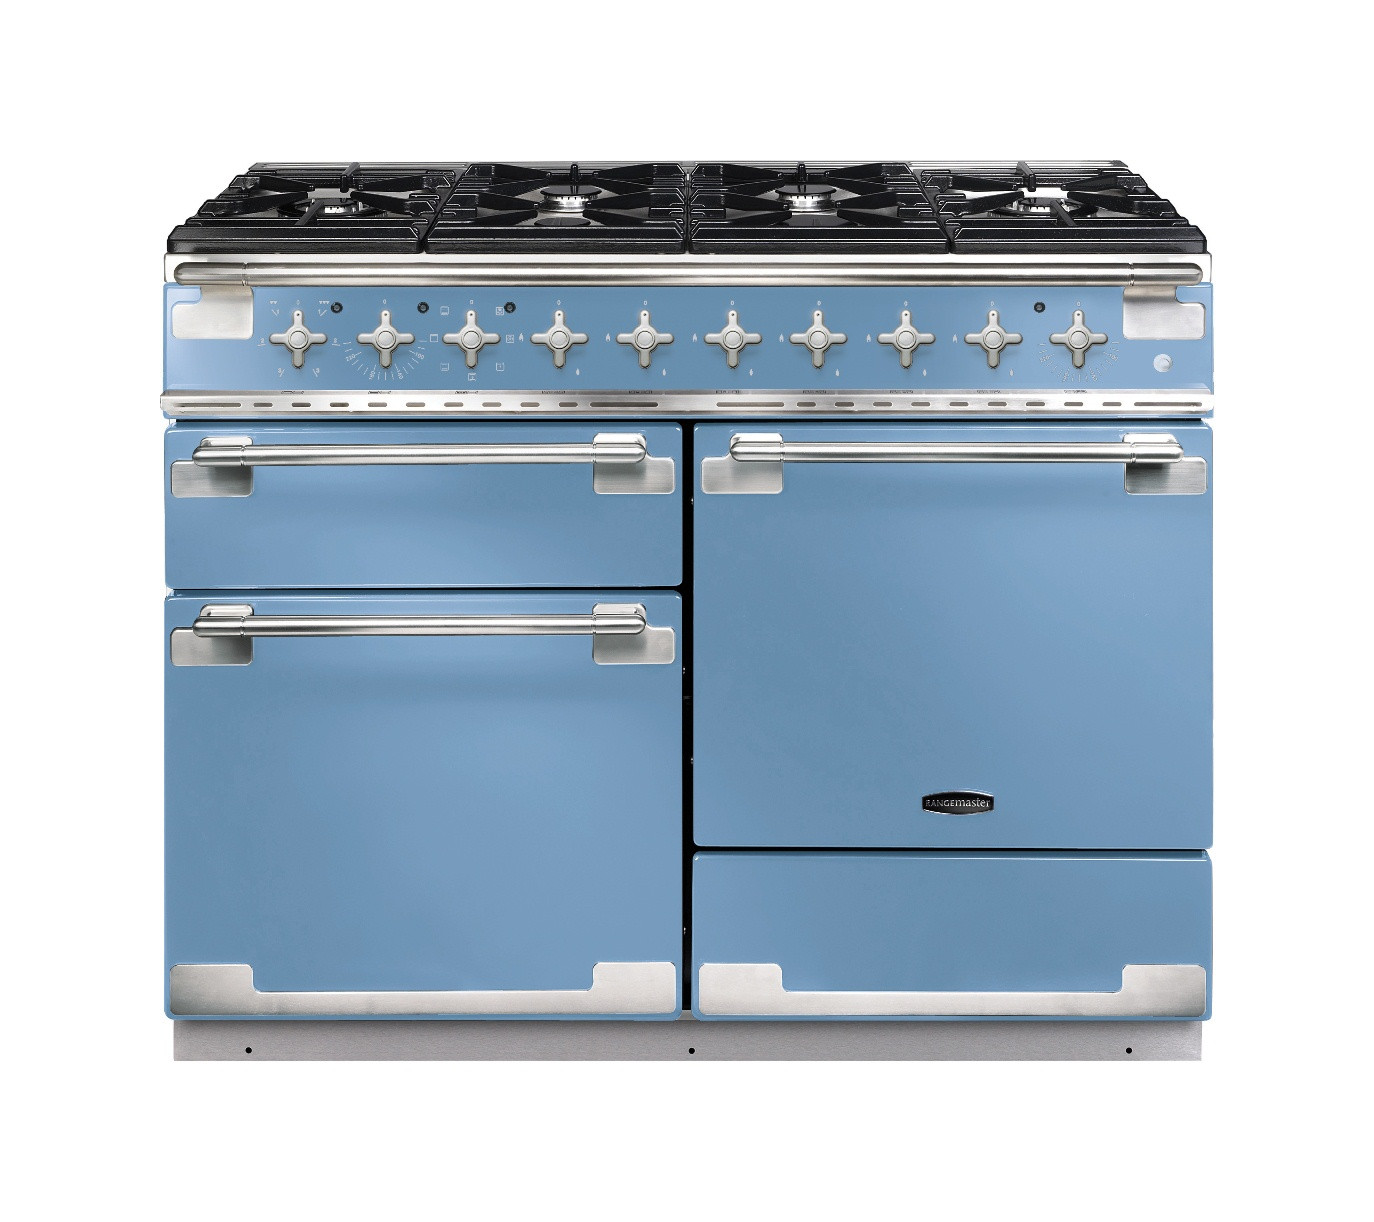 Rangemaster Elise 110 Dual Fuel China Blue Range Cooker 94230